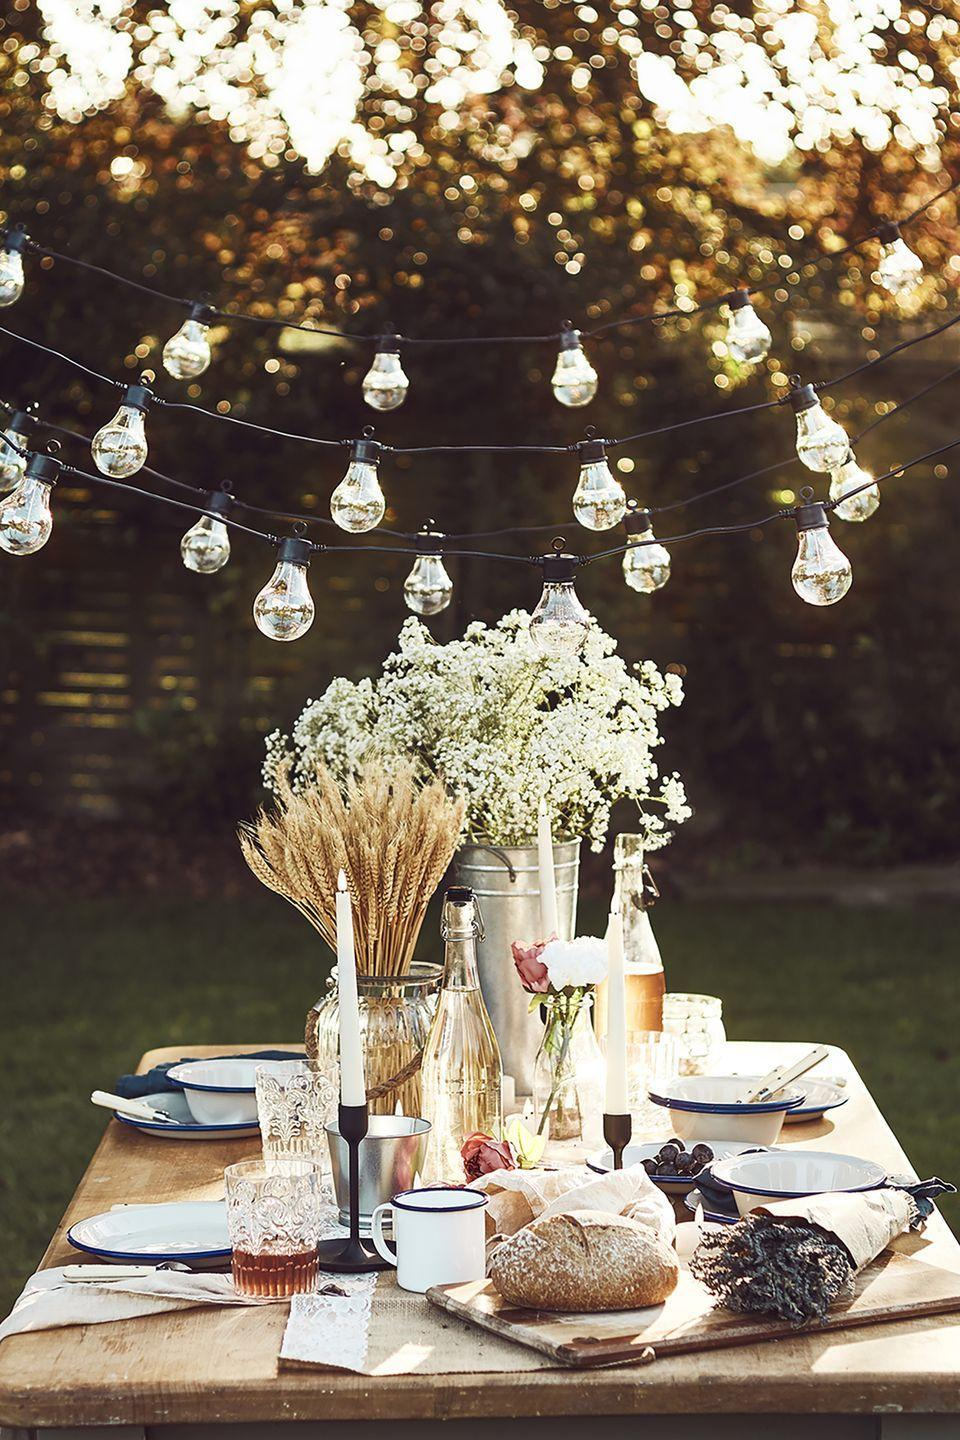 """<p>Hosting a group of six? To create a truly Insta-ready space, consider sprucing up your humble outdoor table with matching napkins, bouquets of fresh blooms, candles, gorgeous dinnerware sets, and plenty of festoon lights, too. </p><p><a href=""""https://go.redirectingat.com?id=127X1599956&url=https%3A%2F%2Fwww.lights4fun.co.uk%2F&sref=https%3A%2F%2Fwww.housebeautiful.com%2Fuk%2Fgarden%2Fg36276312%2Finstagrammable-garden%2F"""" rel=""""nofollow noopener"""" target=""""_blank"""" data-ylk=""""slk:Shop the full look at Lights4Fun"""" class=""""link rapid-noclick-resp"""">Shop the full look at Lights4Fun</a></p>"""